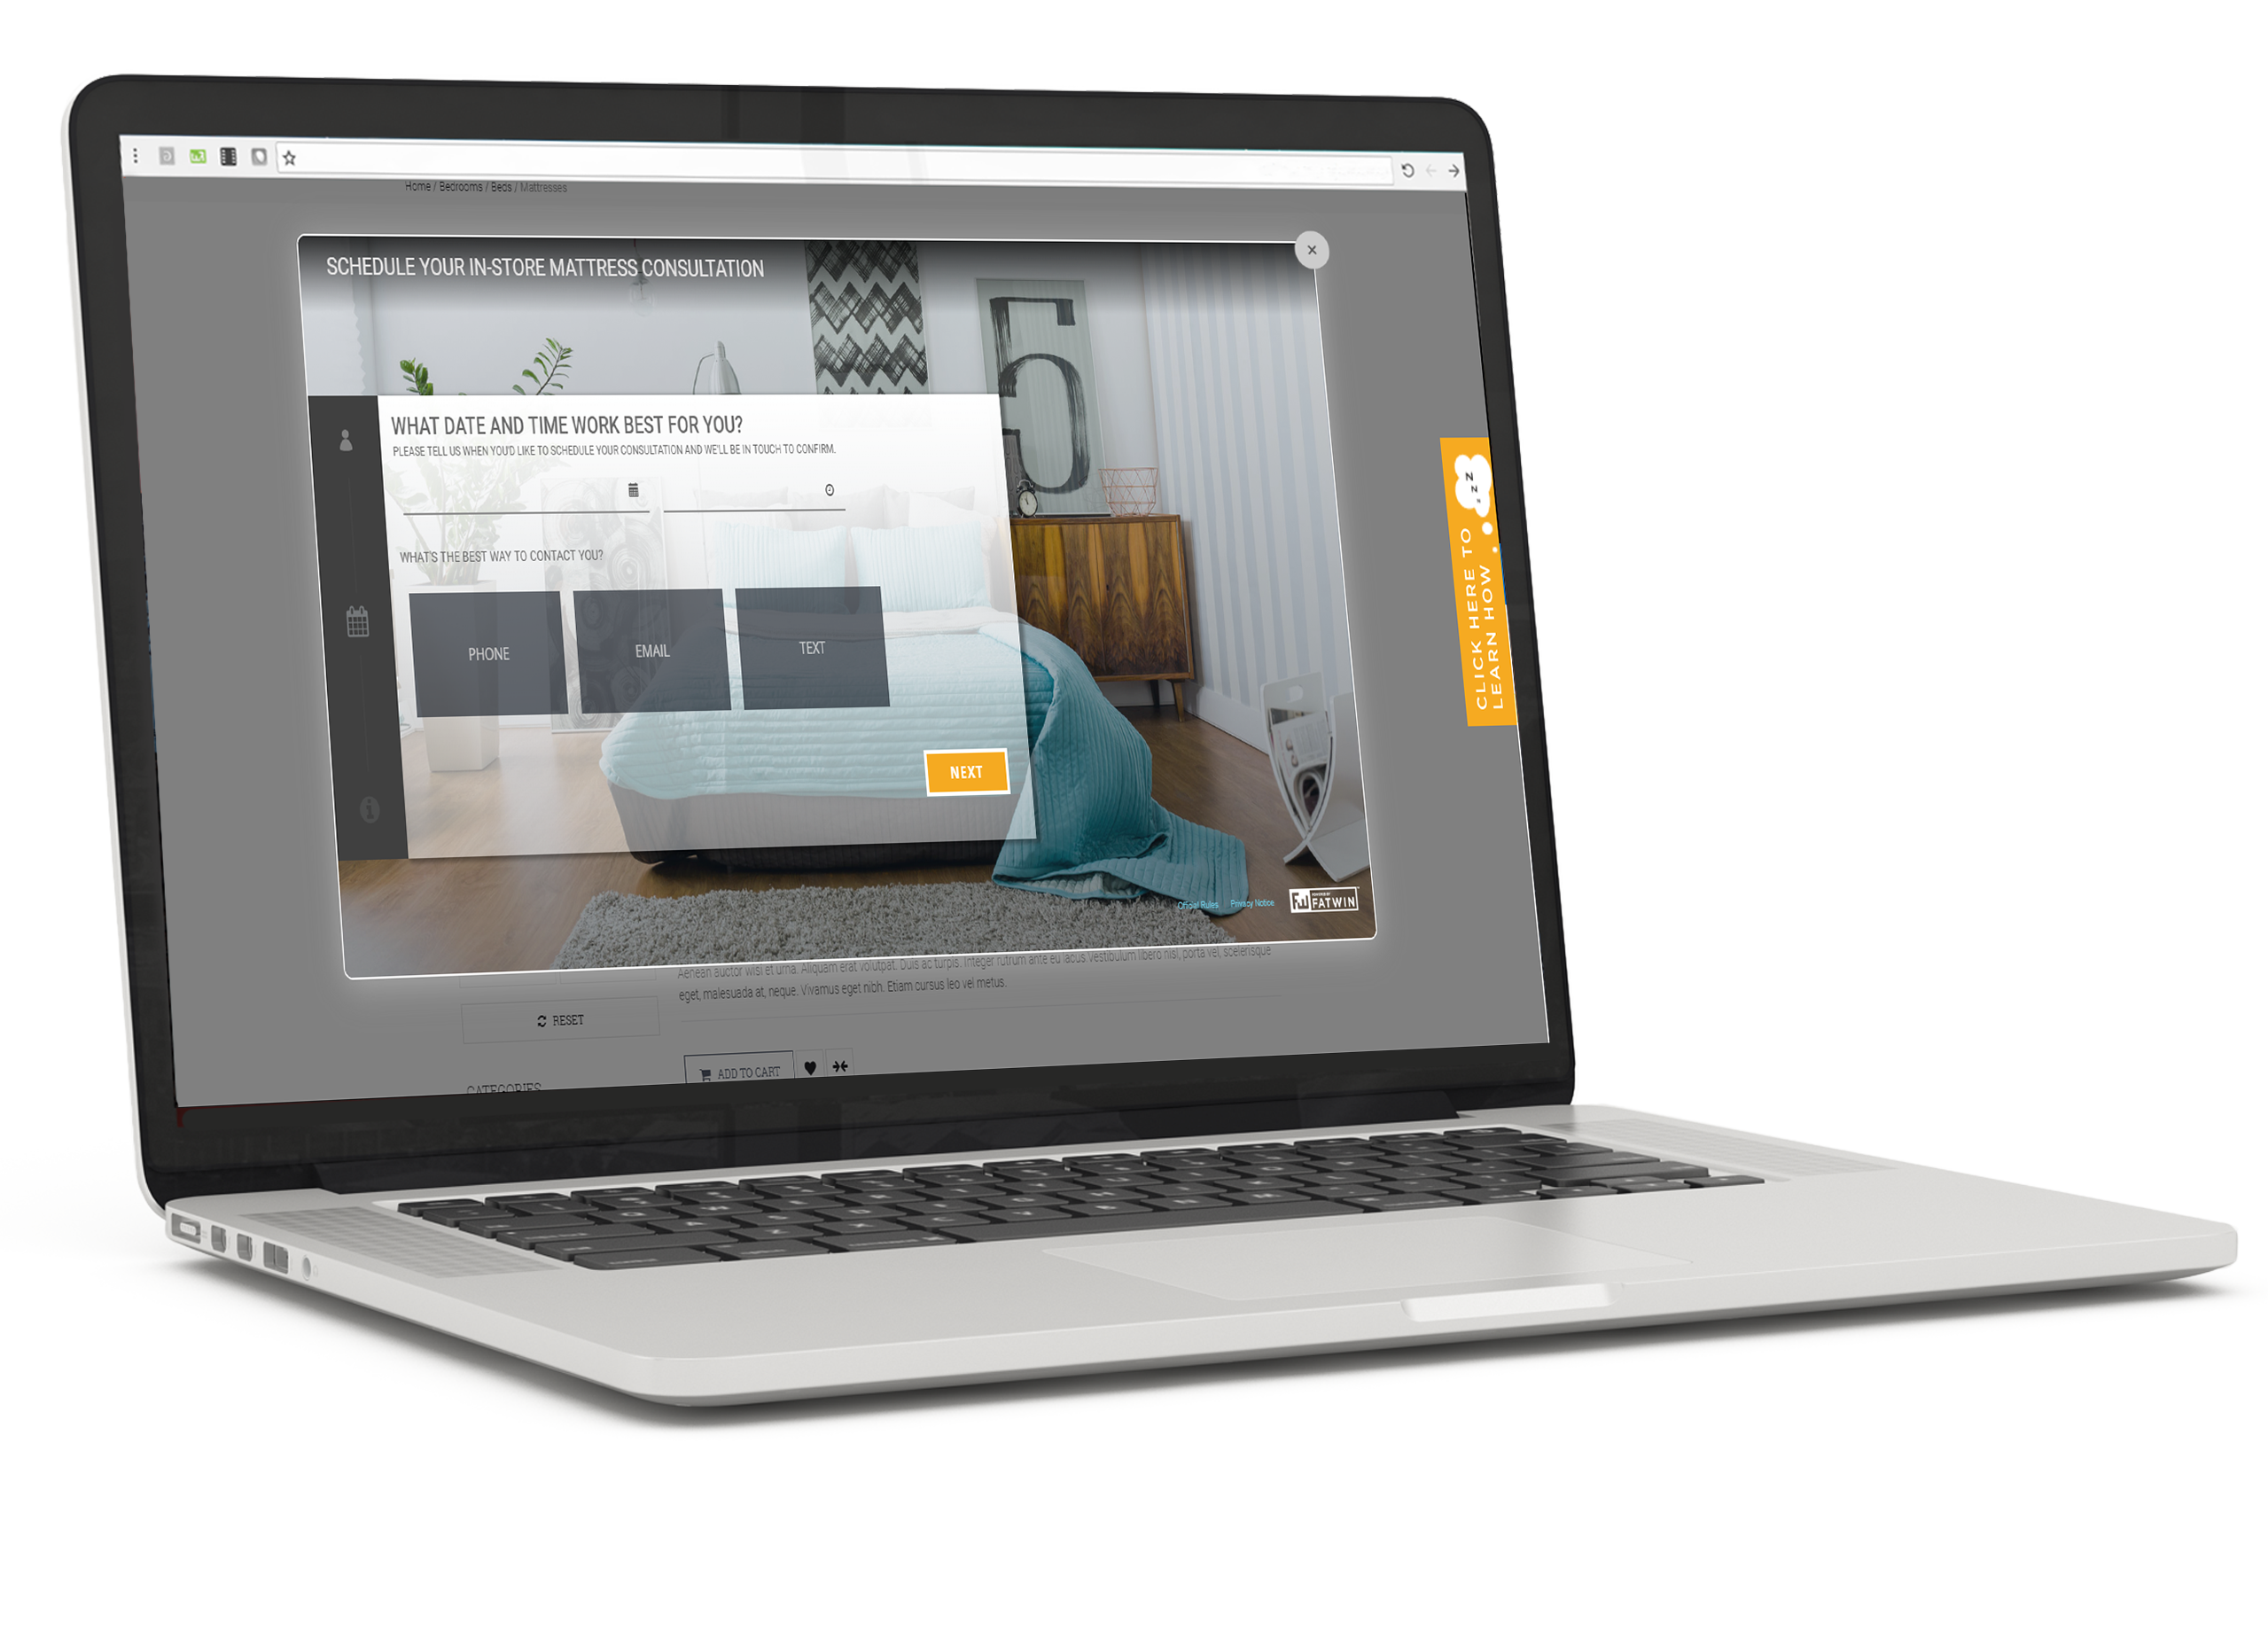 PERQ Demo - PERQ's Consultation Scheduler for the Home Furnishings Industry